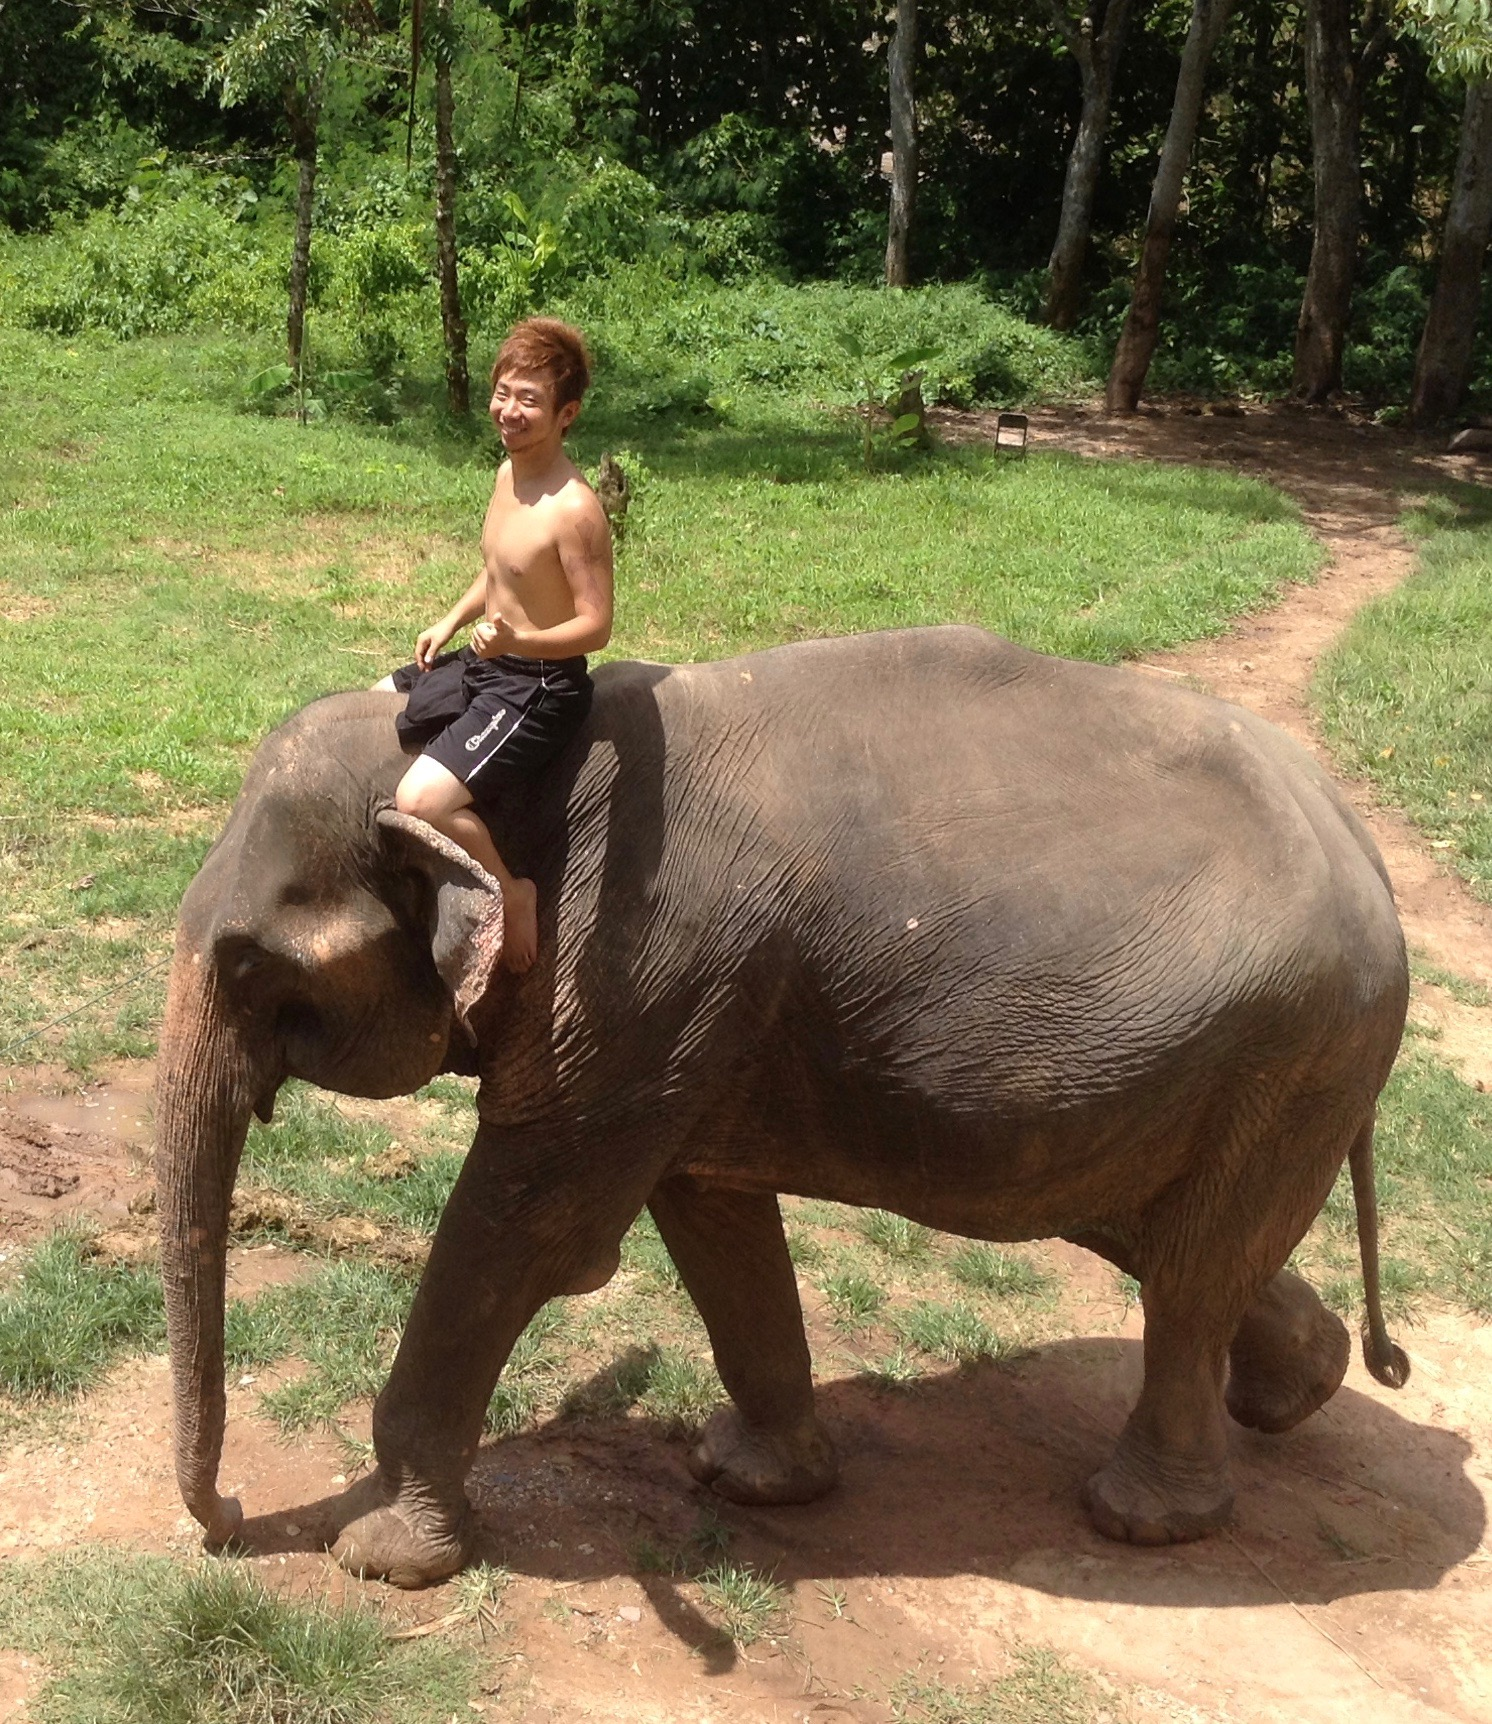 riding on elephant